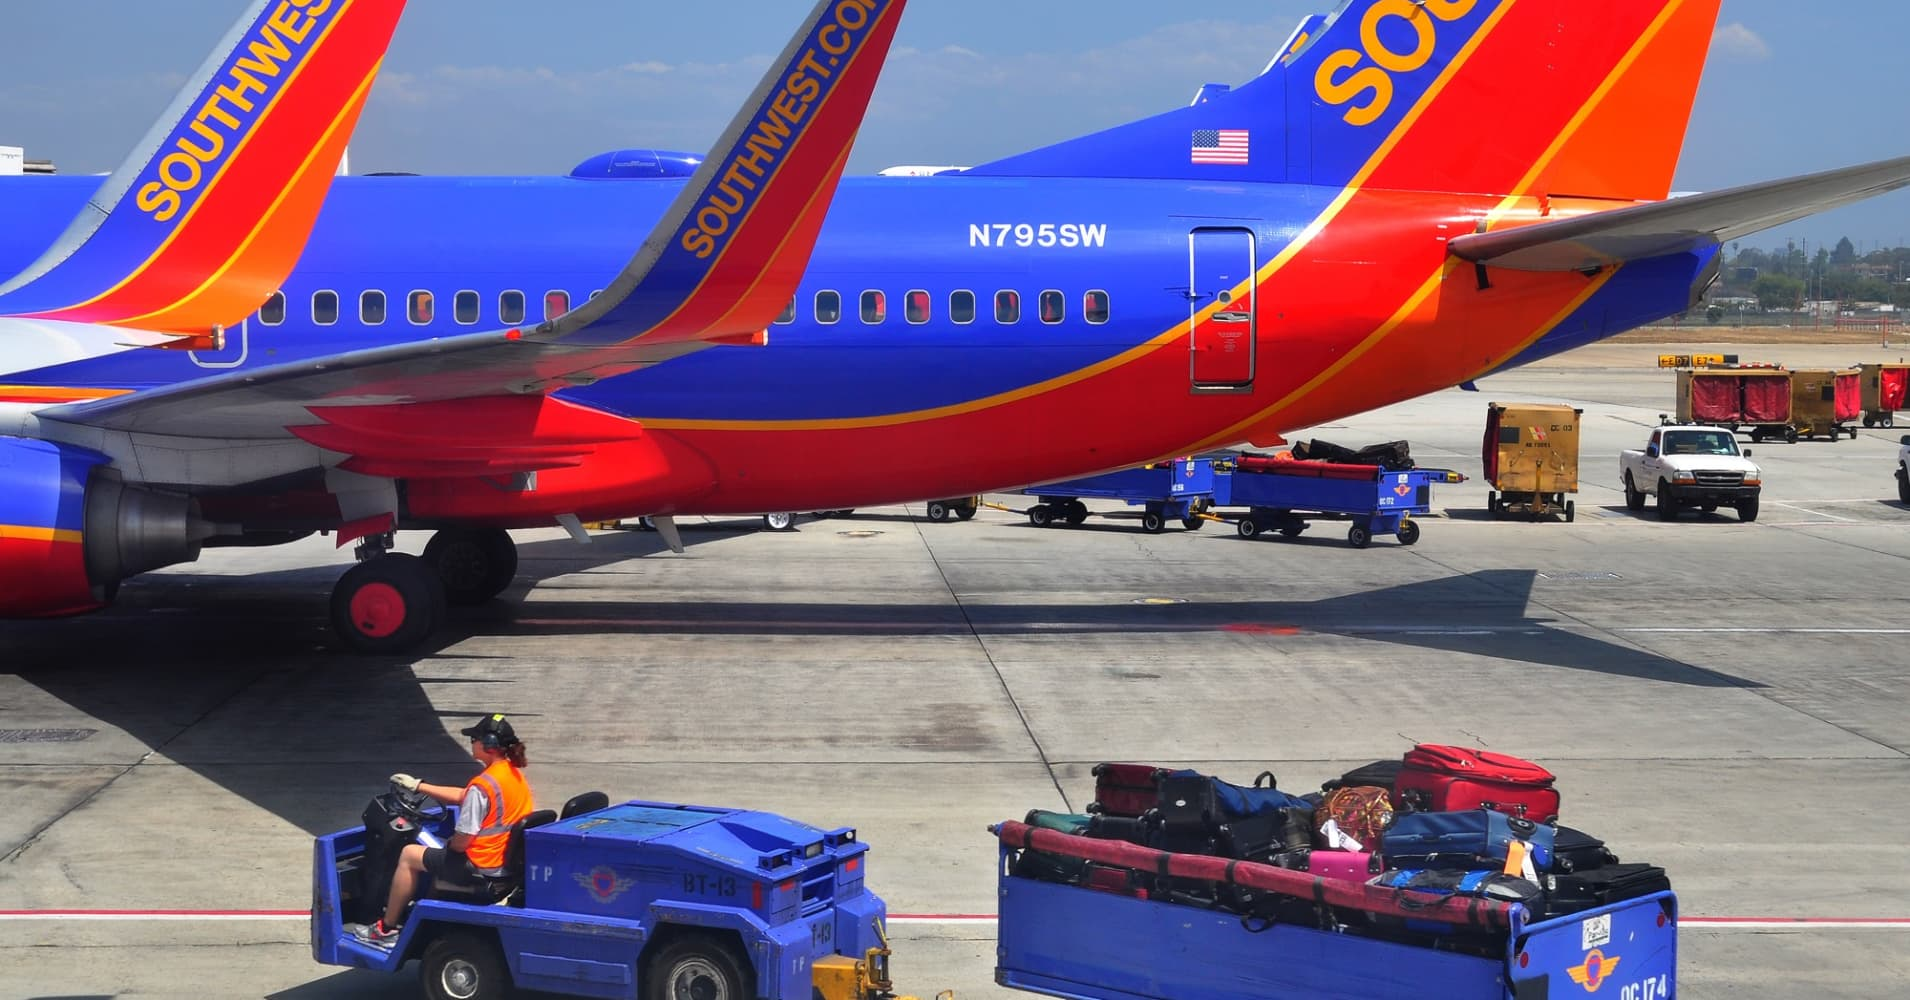 Stocks in Focus: Southwest Airlines Co. (NYSE:LUV), Medtronic plc (NYSE:MDT)